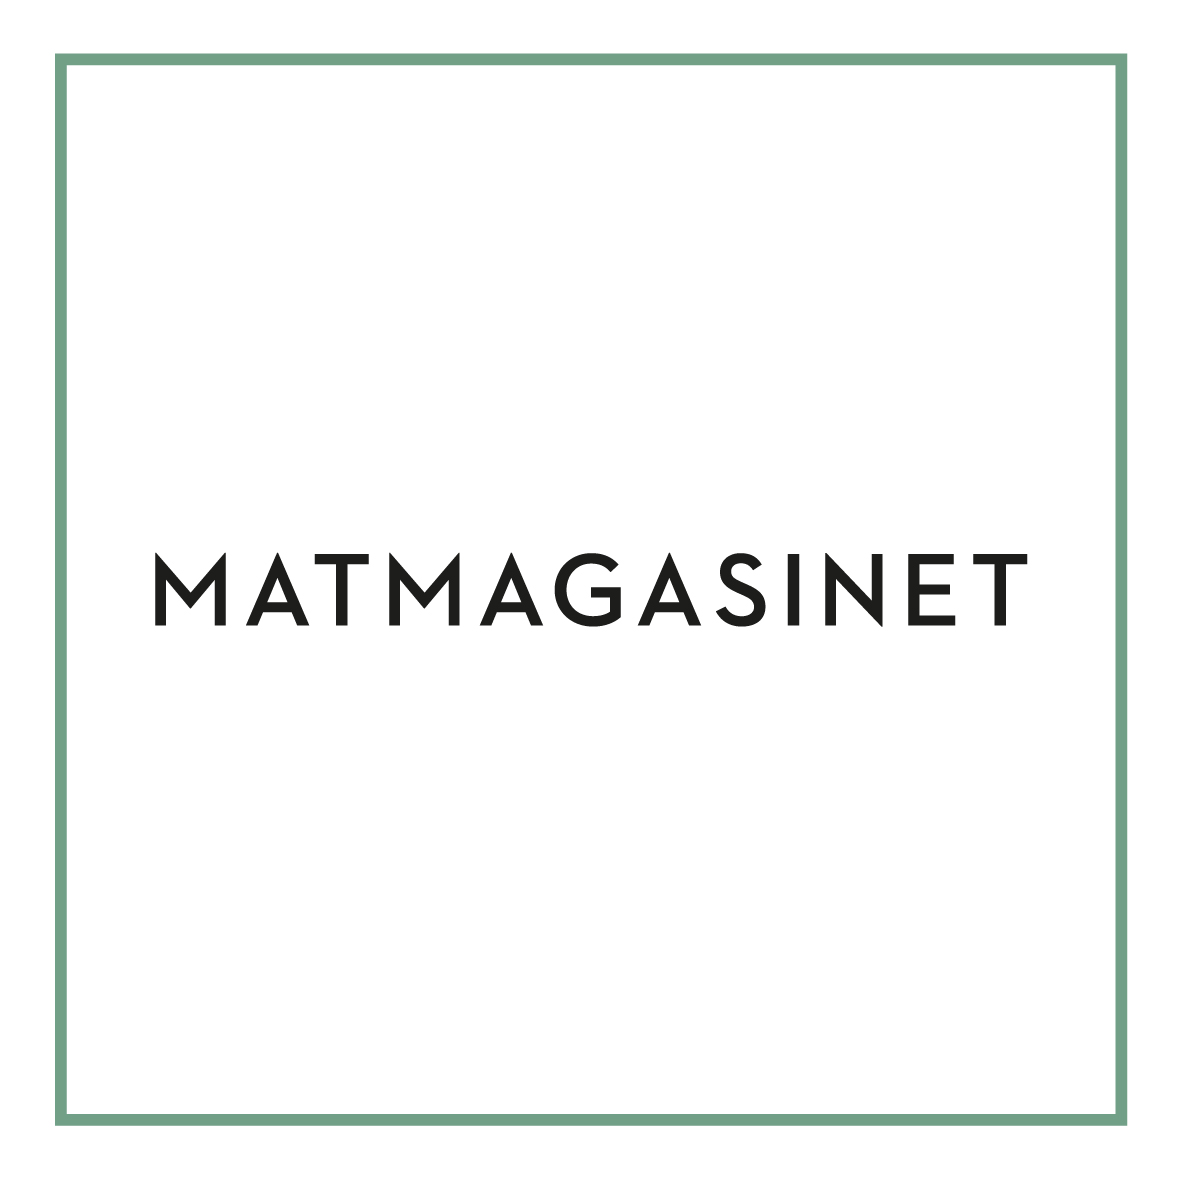 Matmagasinet